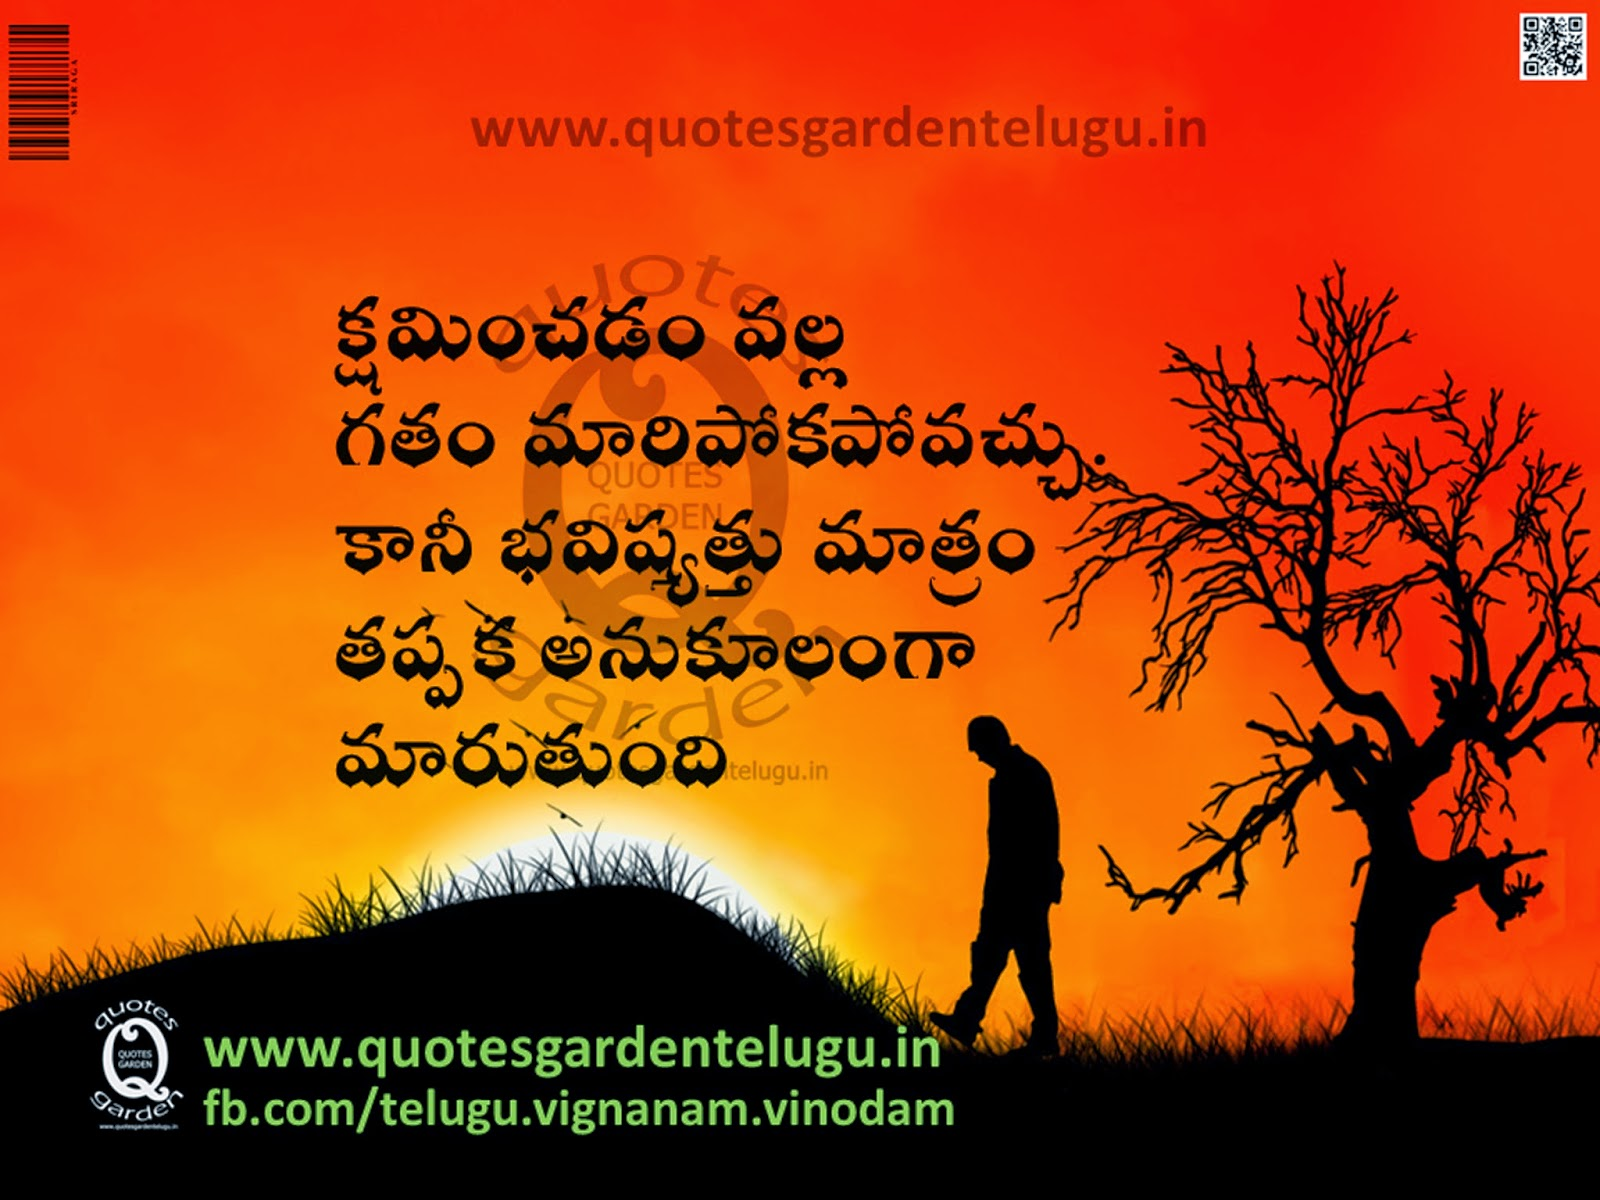 Best Telugu inspirational life quotes with images